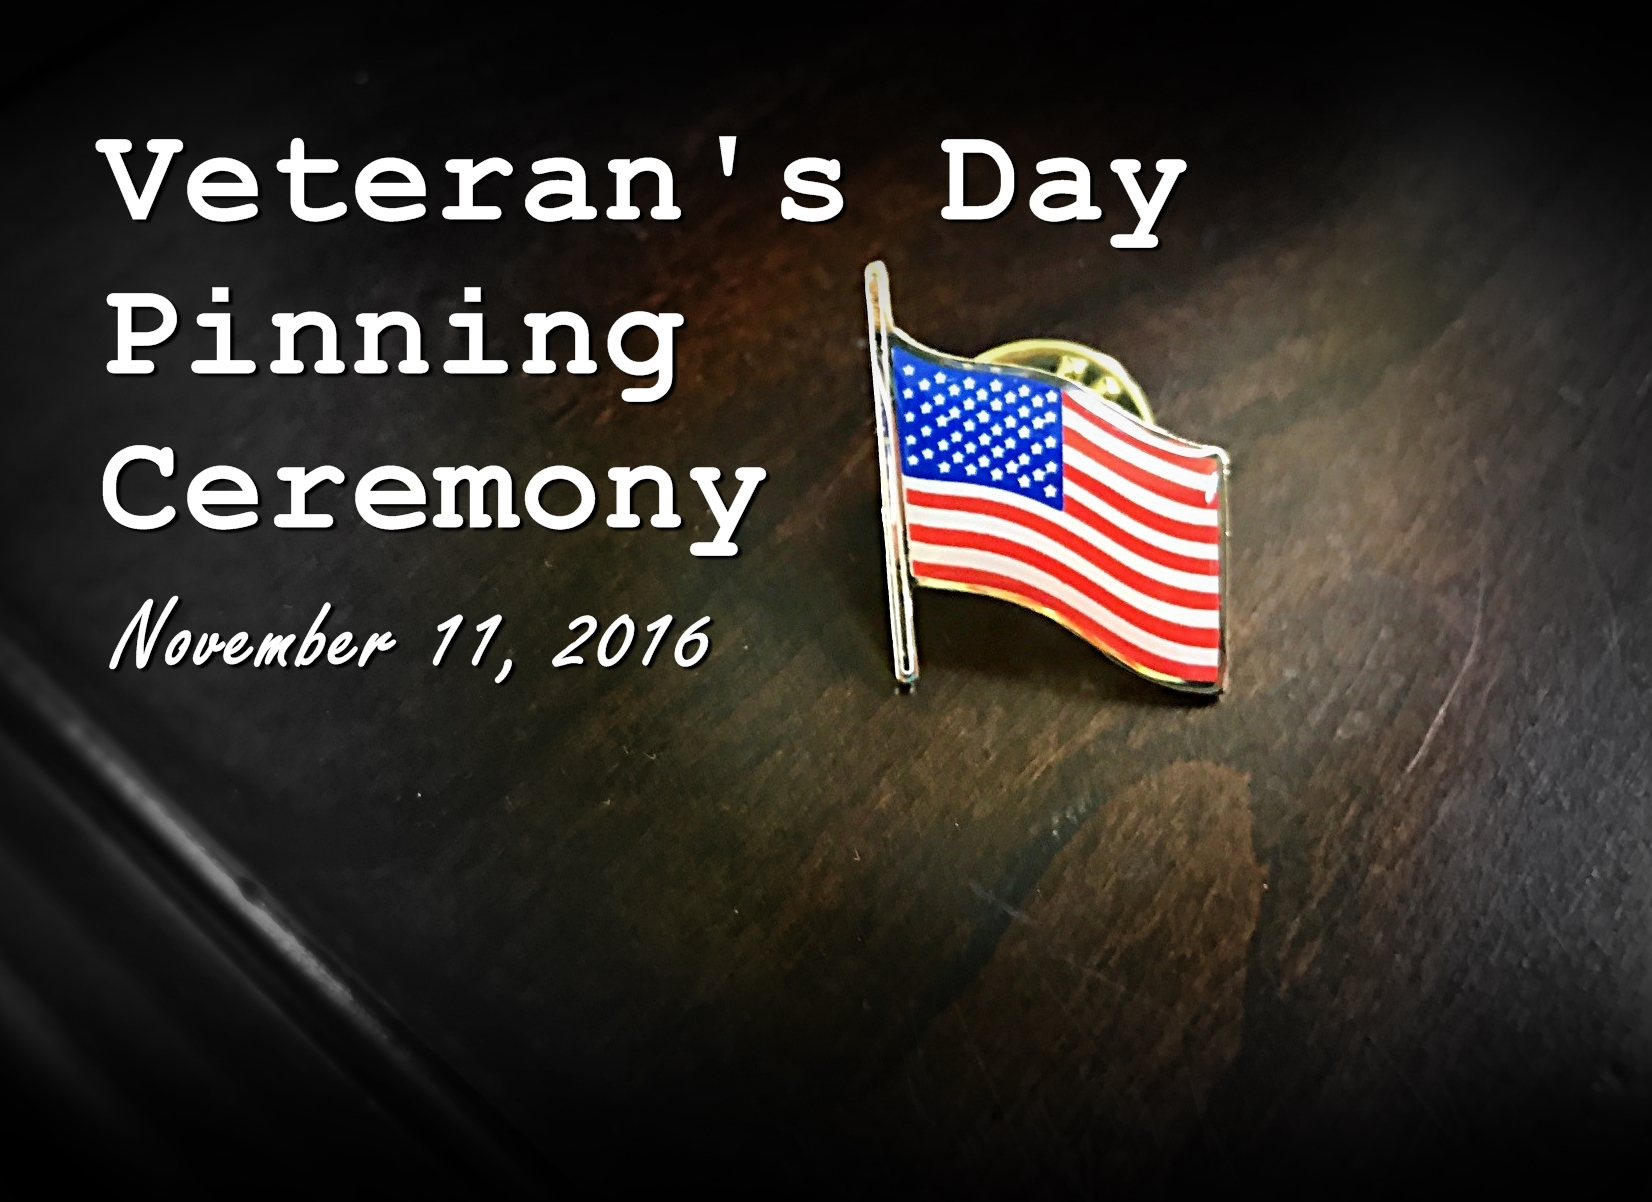 Veterans Day Pinning Ceremony 2016